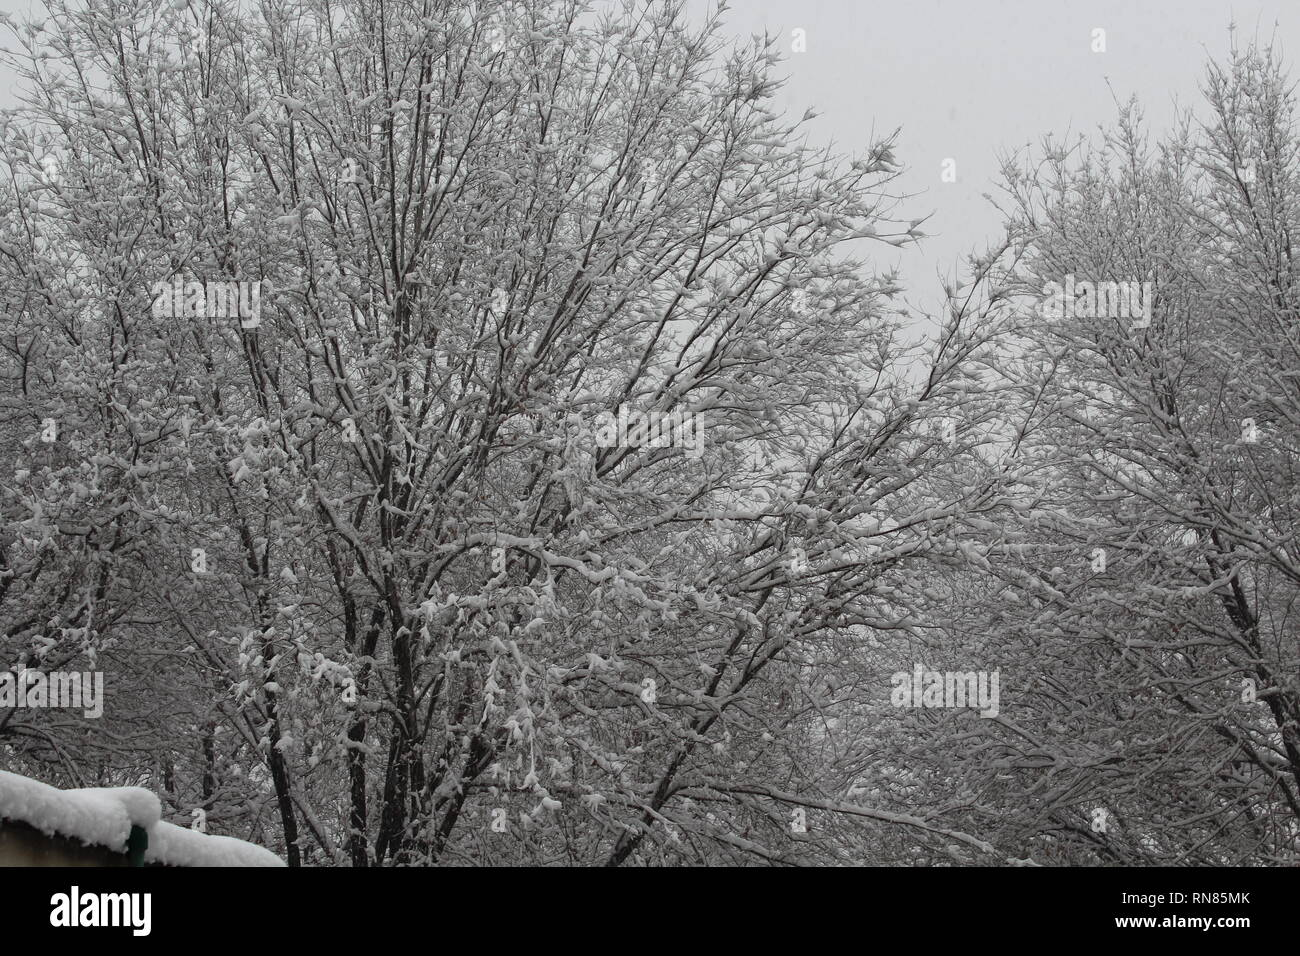 A picture of random trees taken in a snowy morning in Kabul, Afghanistan. - Stock Image